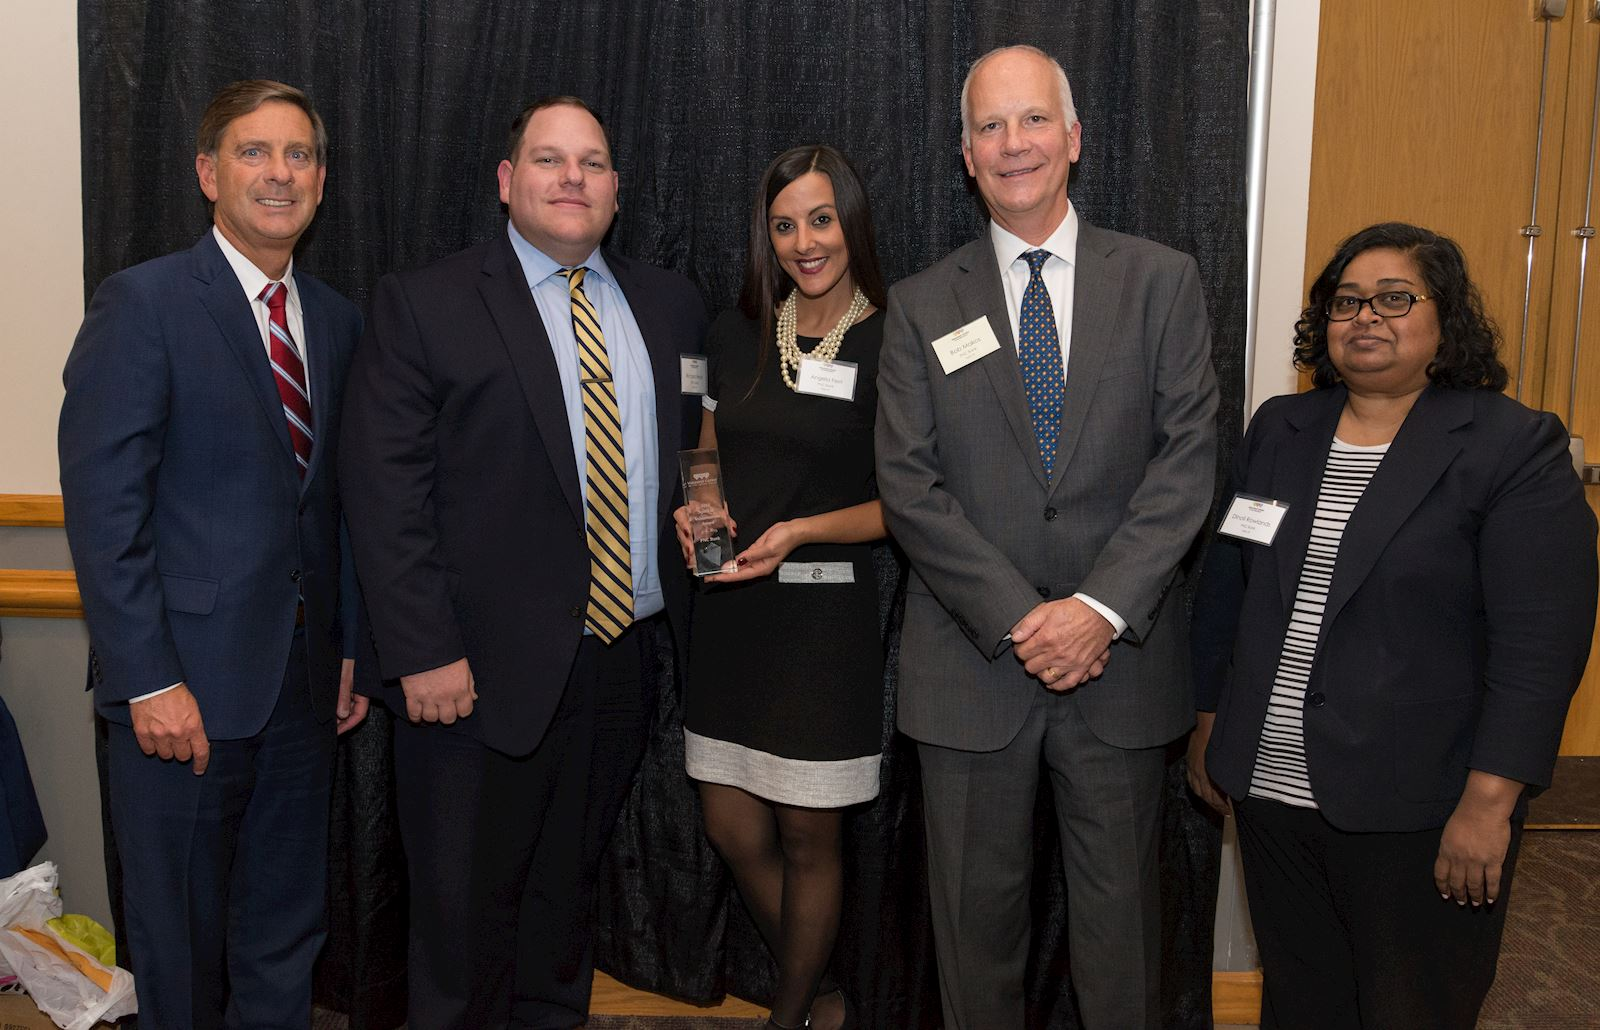 Volunteer center of lehigh valley spirit of volunteerism congratulations to the winners for 2017 malvernweather Image collections